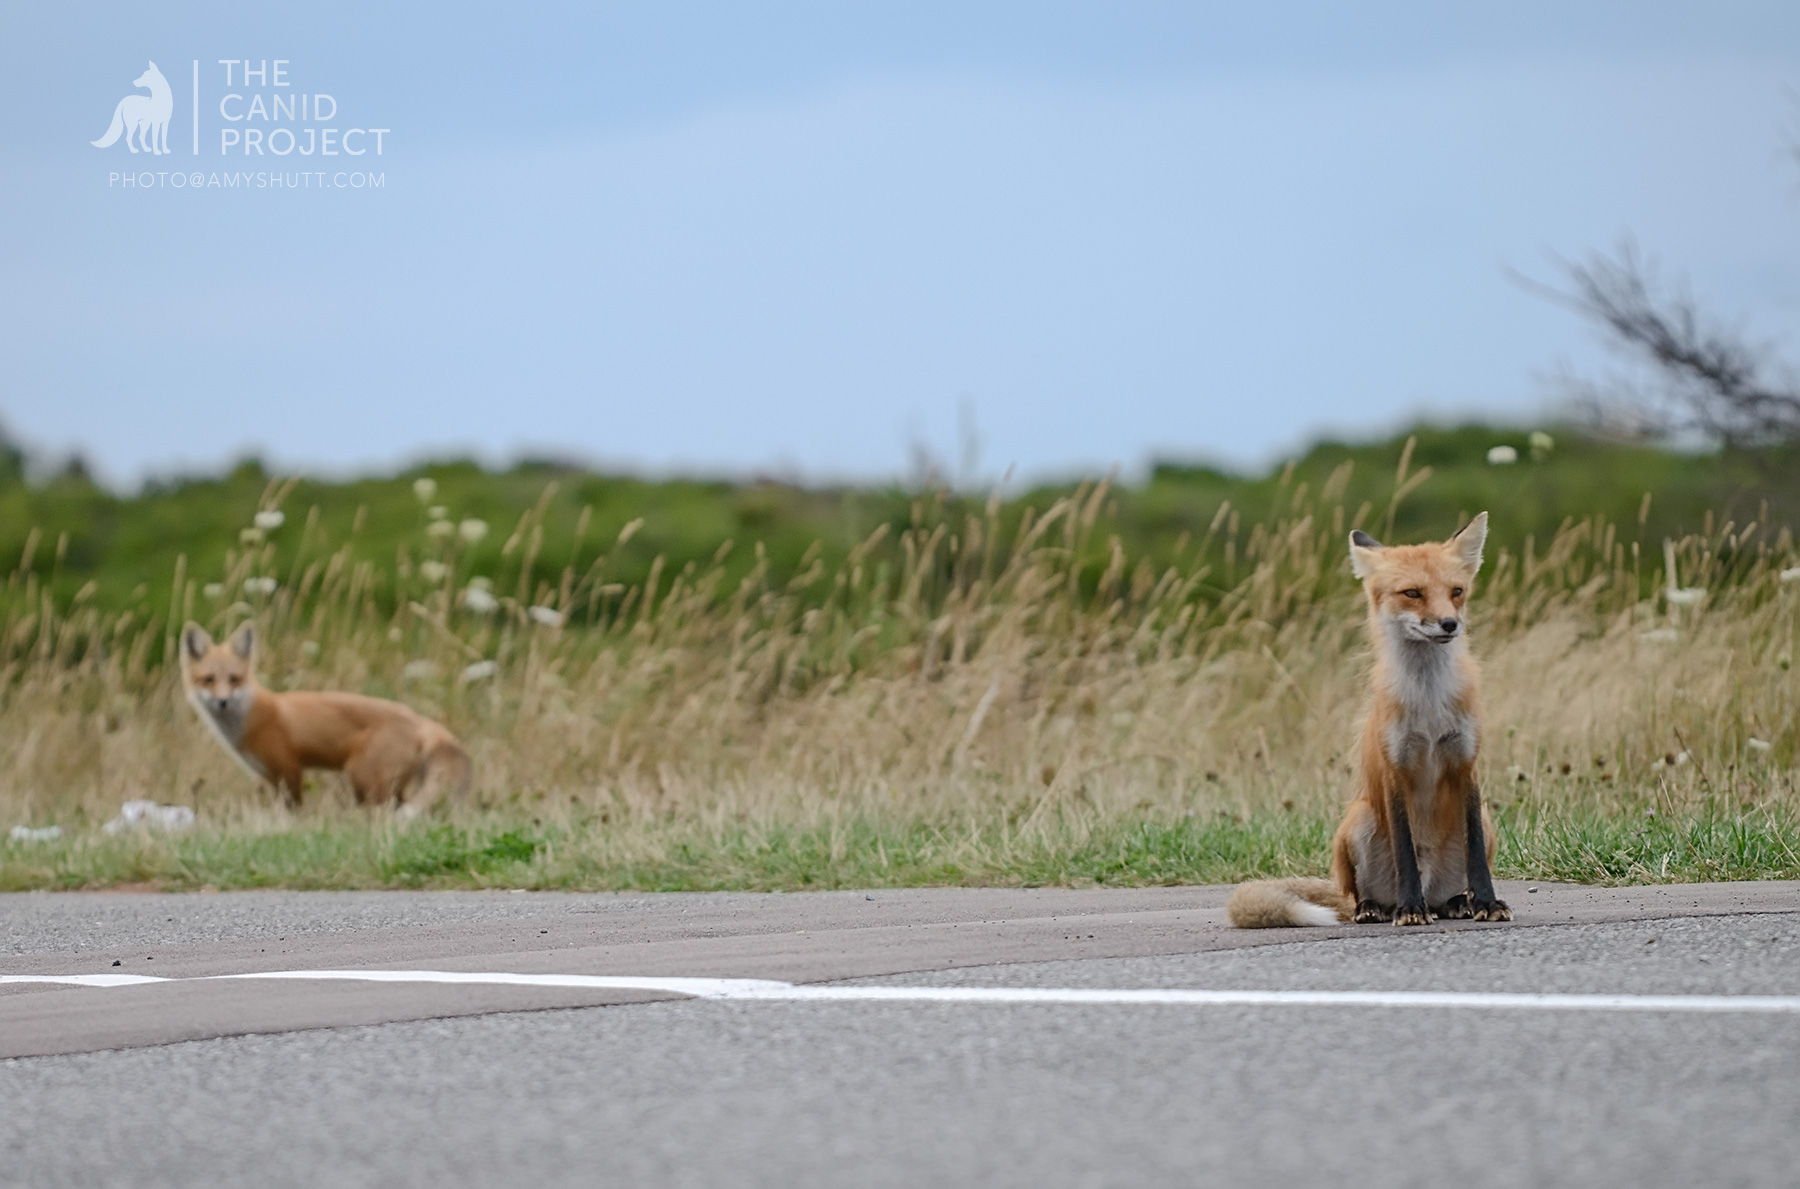 A FATHER FOX PANHANDLES ON THE SIDE OF THE ROAD FOR FOOD, AS HIS YOUNG KIT WATCHES AND LEARNS. PANHANDLING IS A DANGEROUS WAY TO MAKE A LIVING FOR FOXES AND OTHER WILDLIFE IN NATIONAL PARKS.  (THIS PHOTO WAS TAKEN IN PRINCE EDWARD ISLAND NATIONAL PARK).